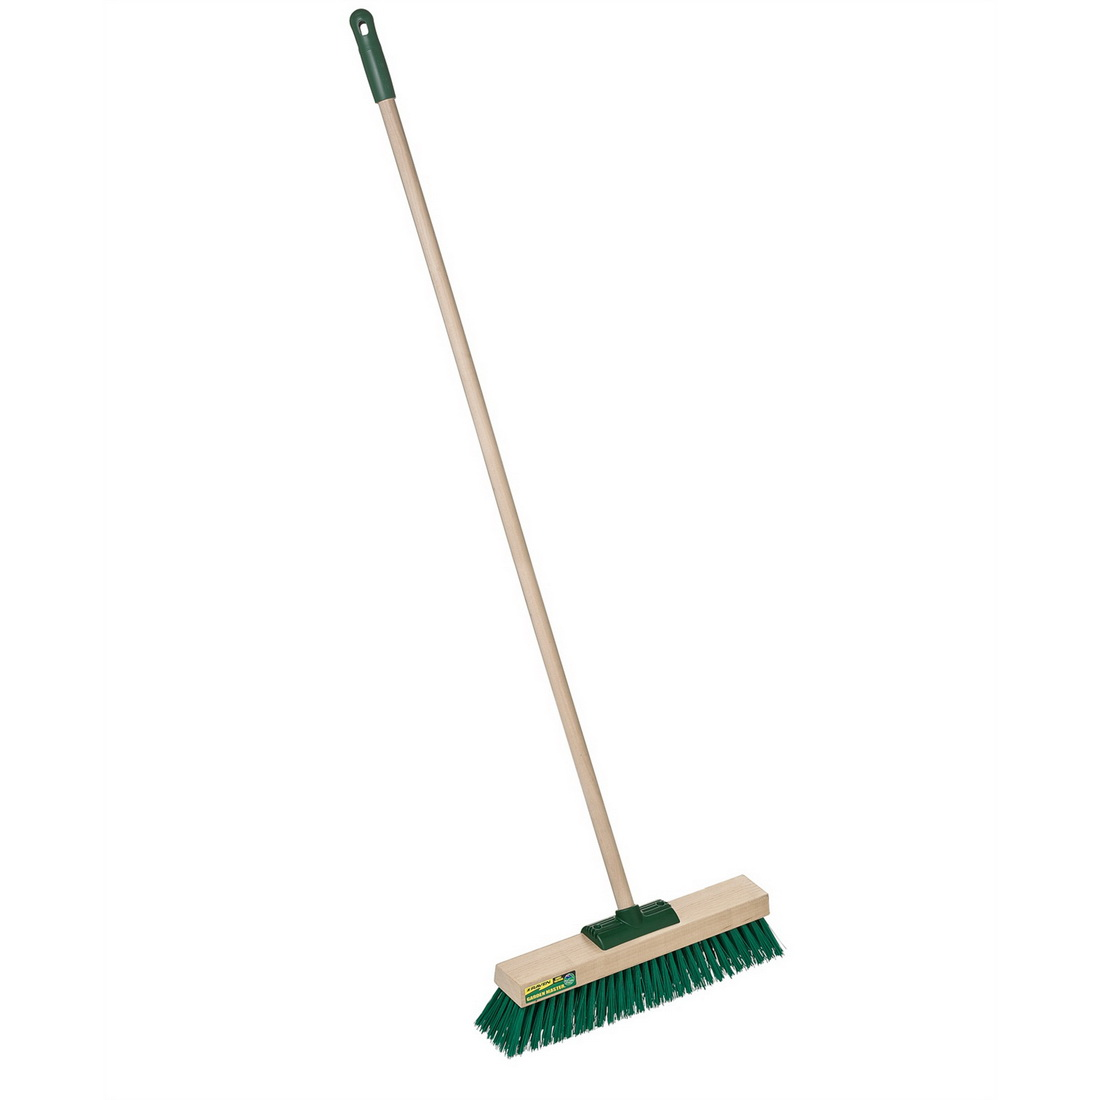 Raven Garden Master Contractors Broom 460mm 8188B